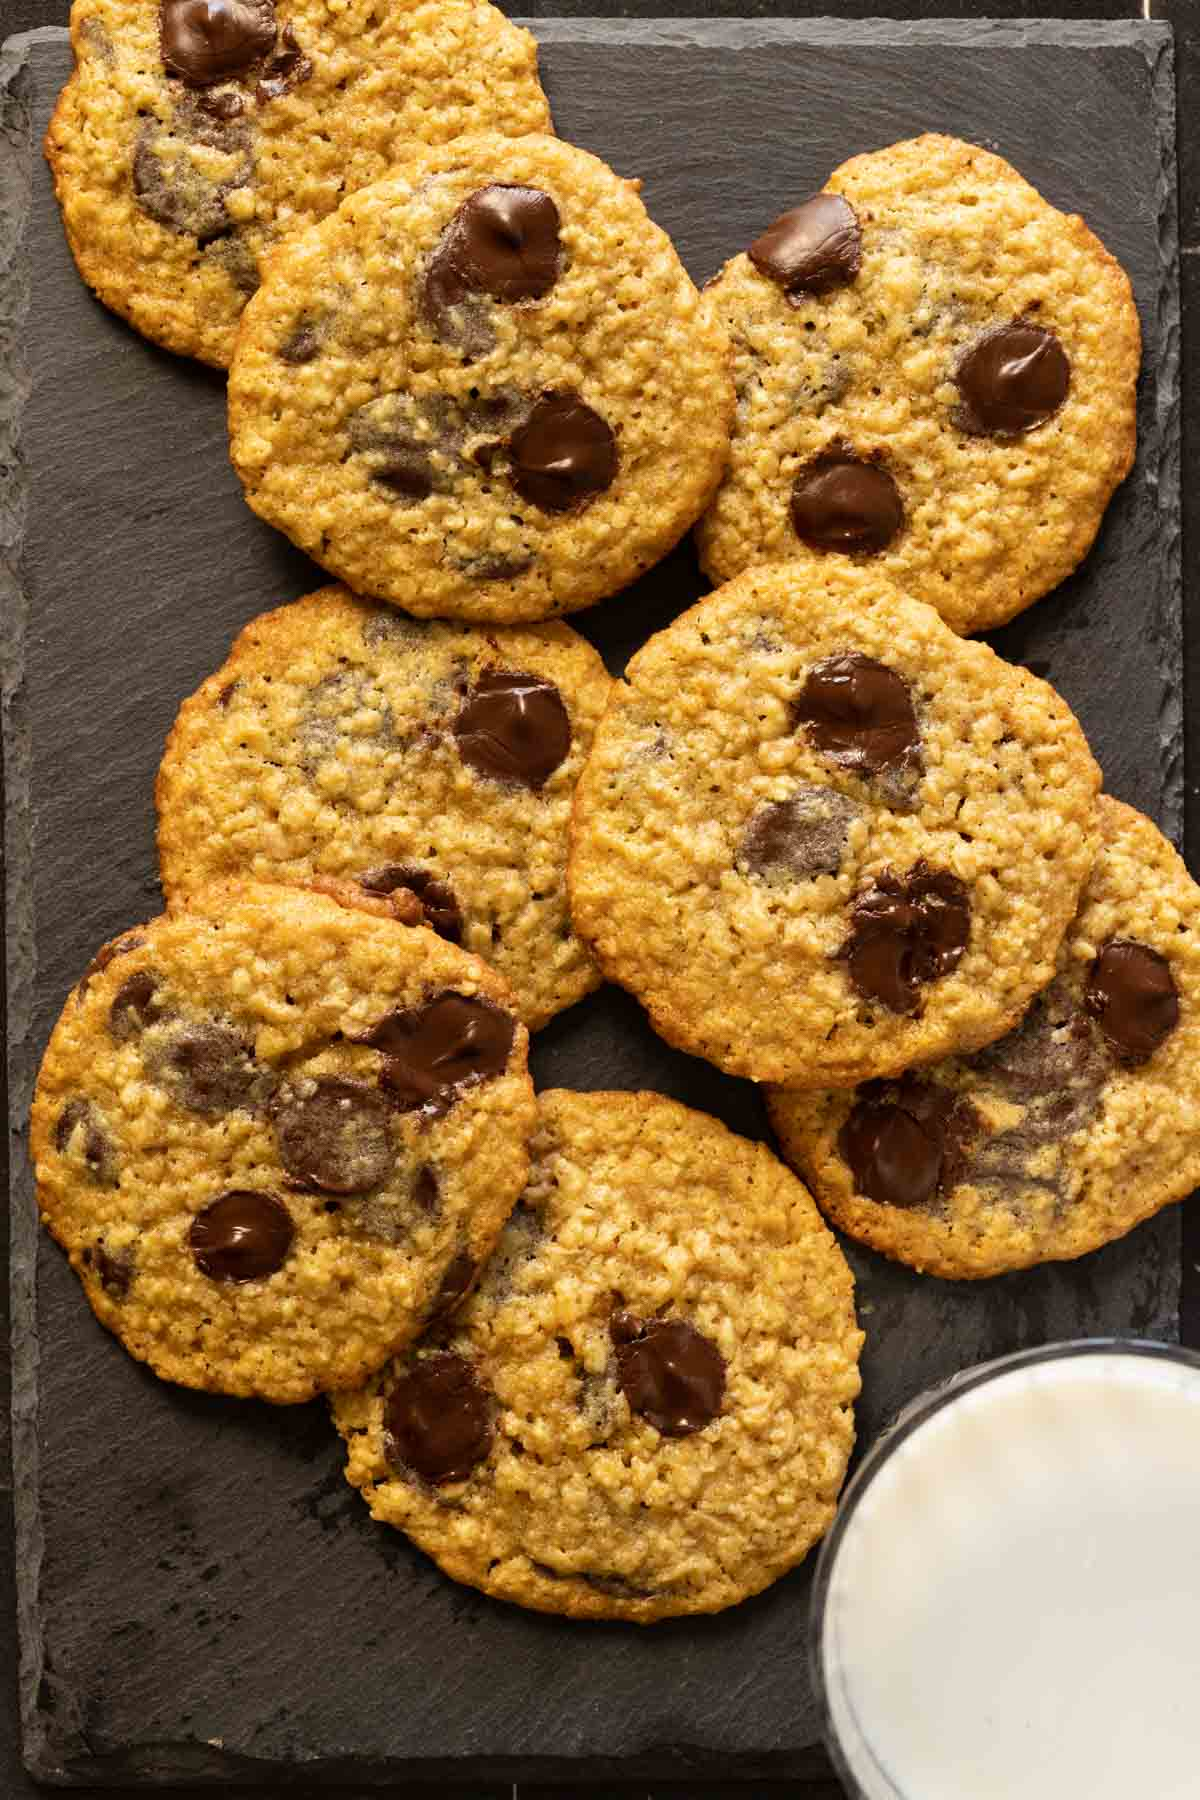 oatmeal chocolate chip cookies with a glass of milk